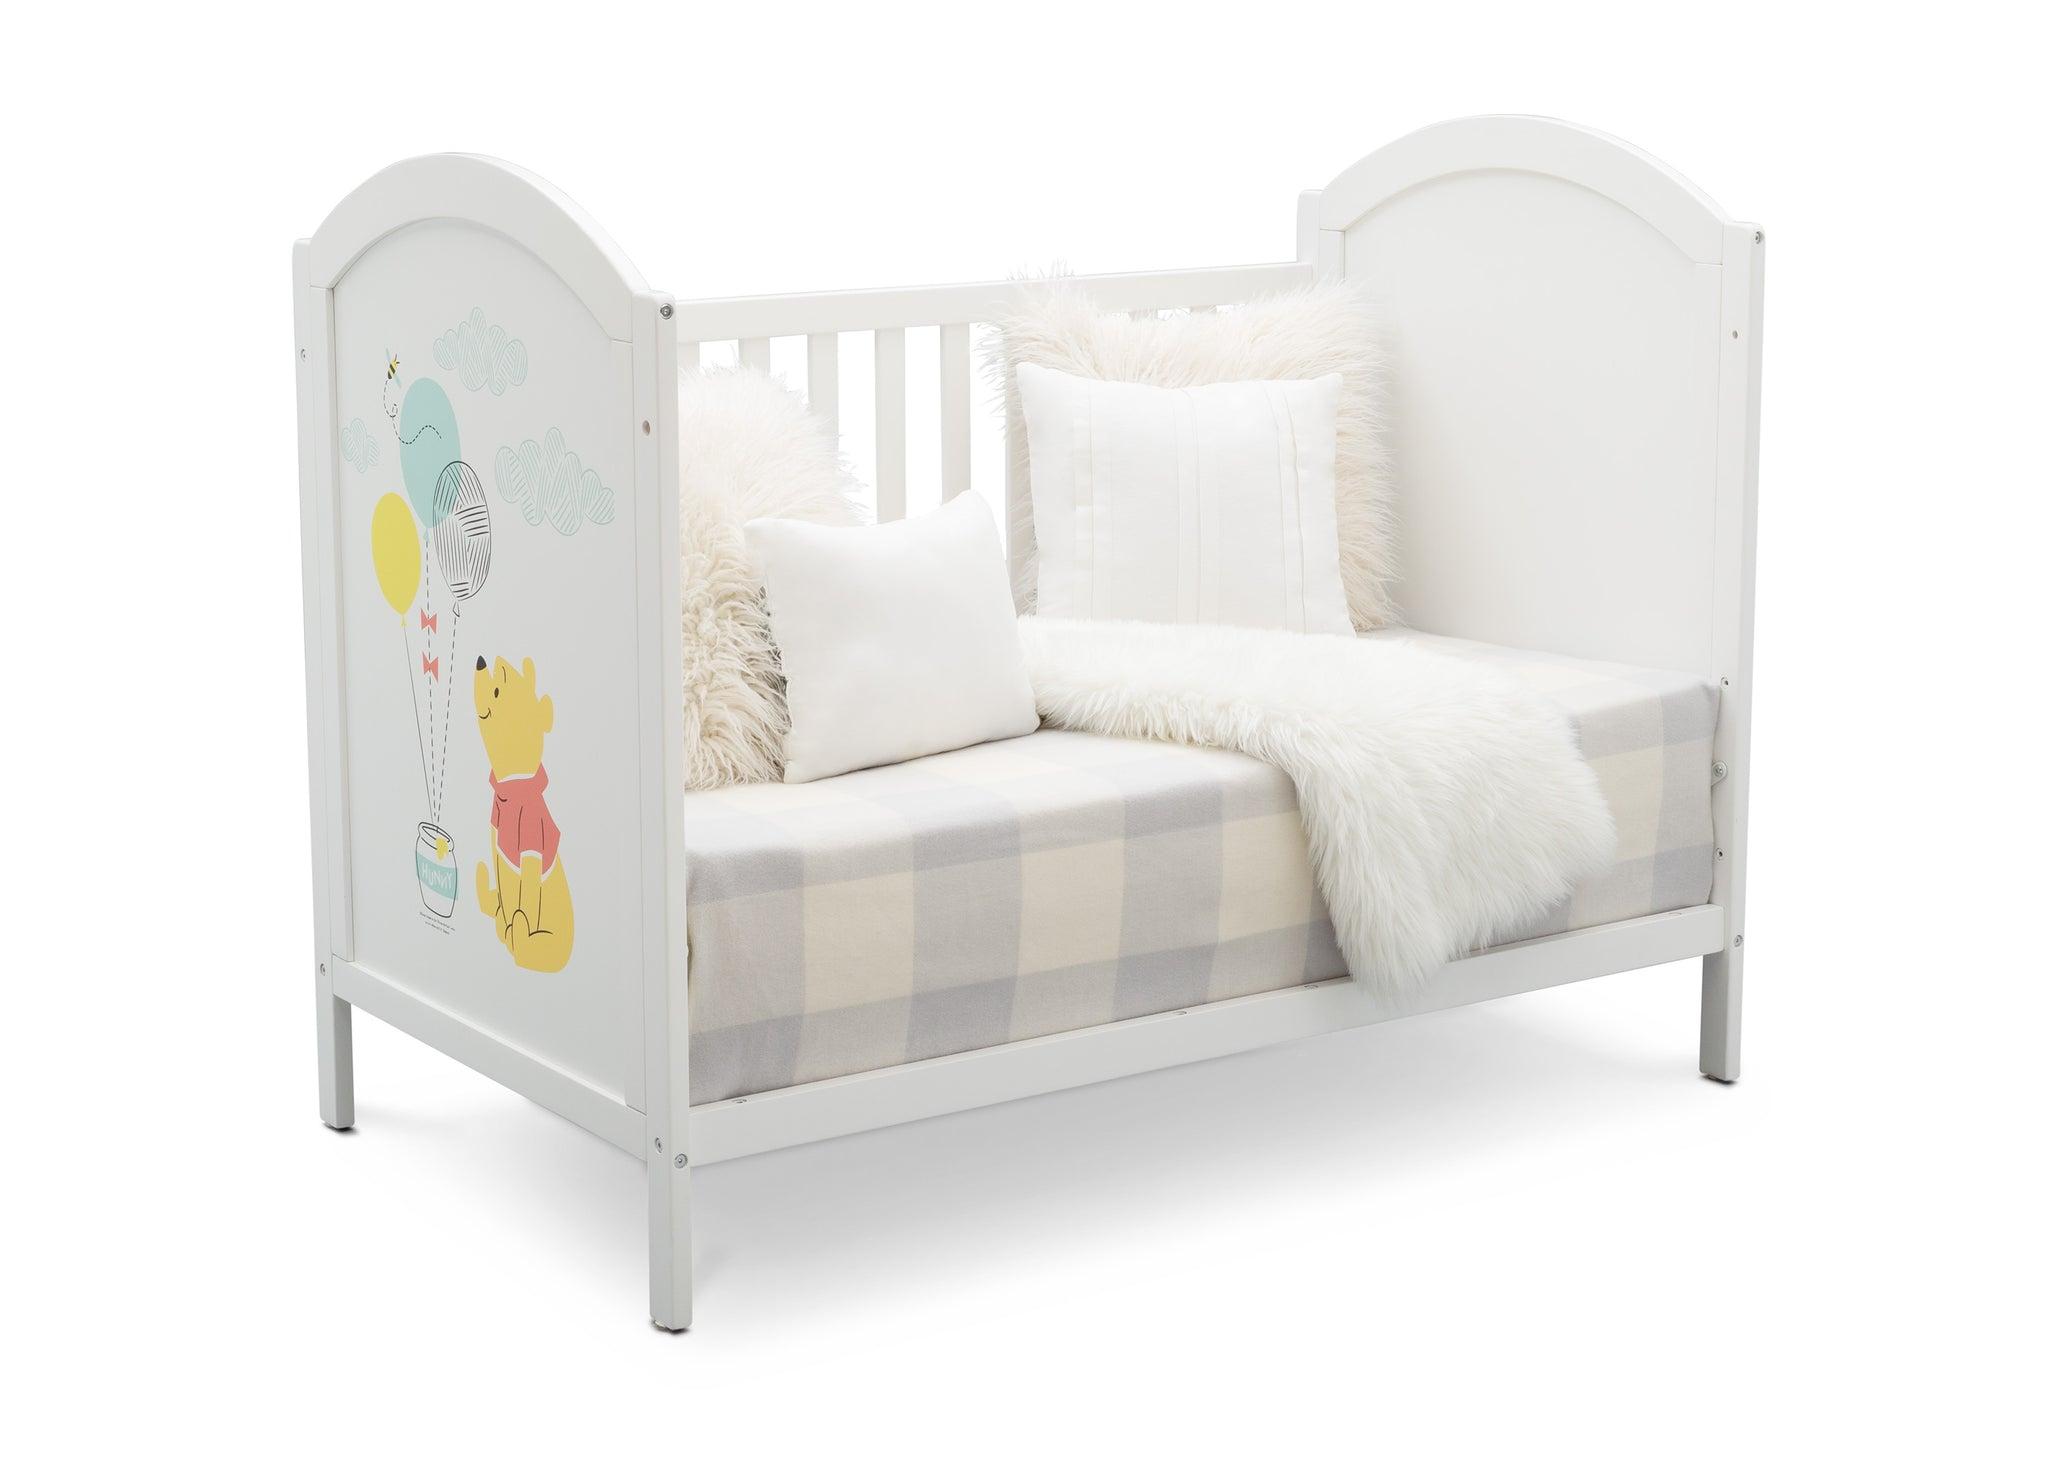 Delta Children Bianca White with Pooh (1301) Winnie The Pooh 4-in-1 Convertible Crib, Day Bed Silo View 2